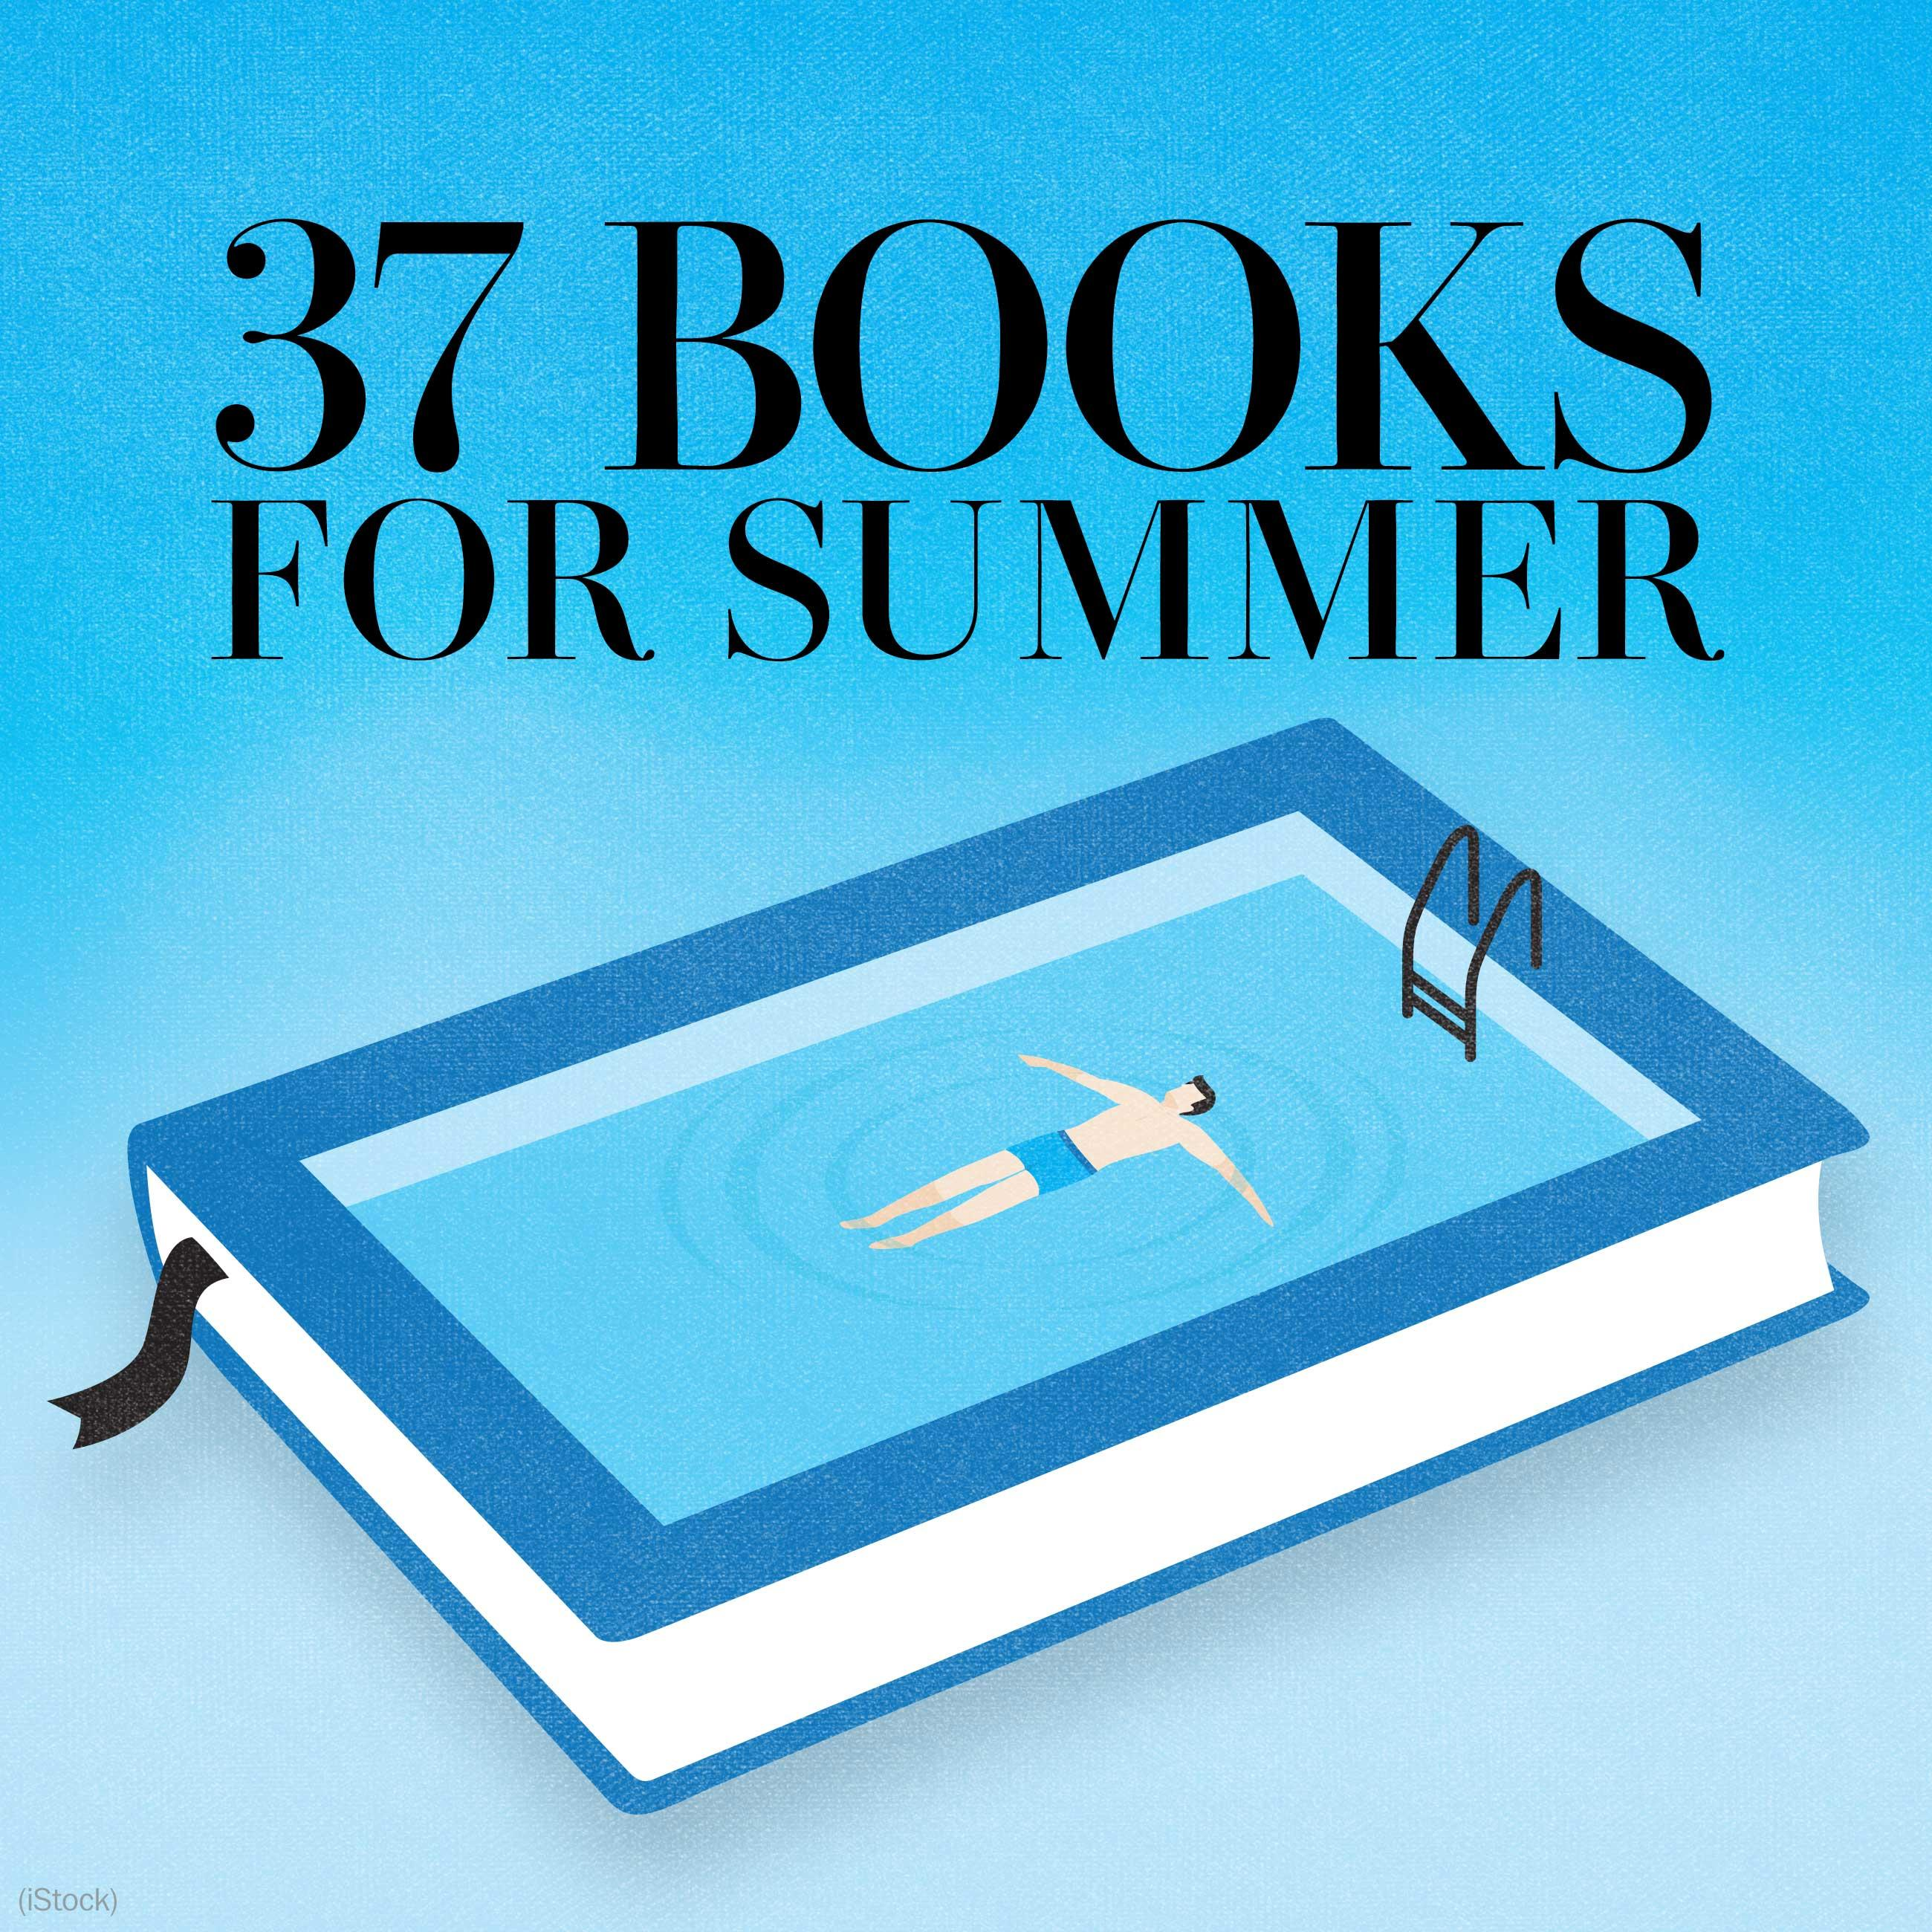 2016: Summer books we've loved so far